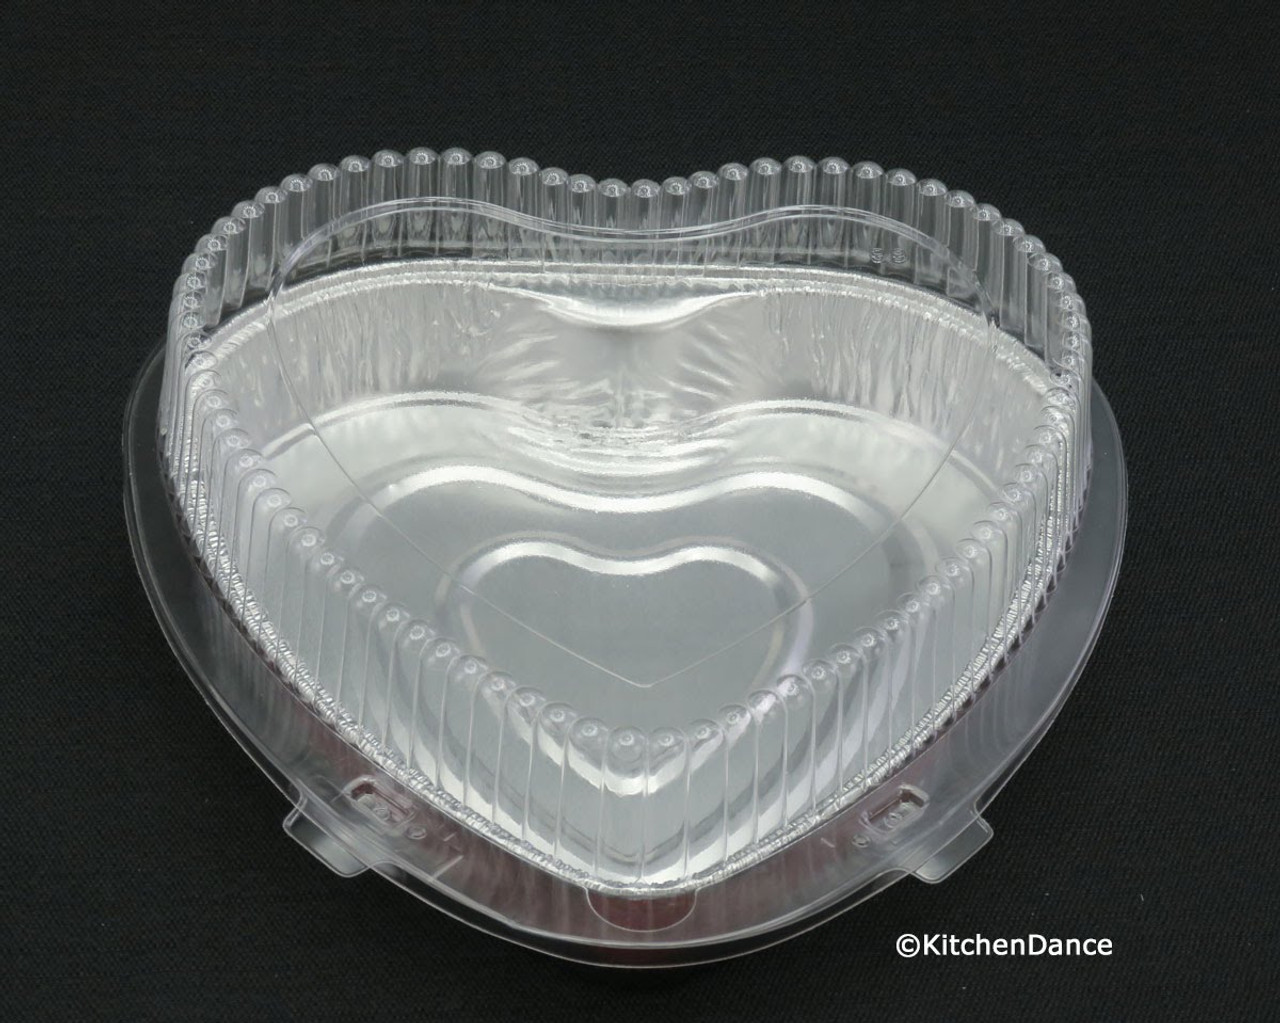 Heart Shaped Foil Pan with Clamshell Container - Case of 100 - #339-99